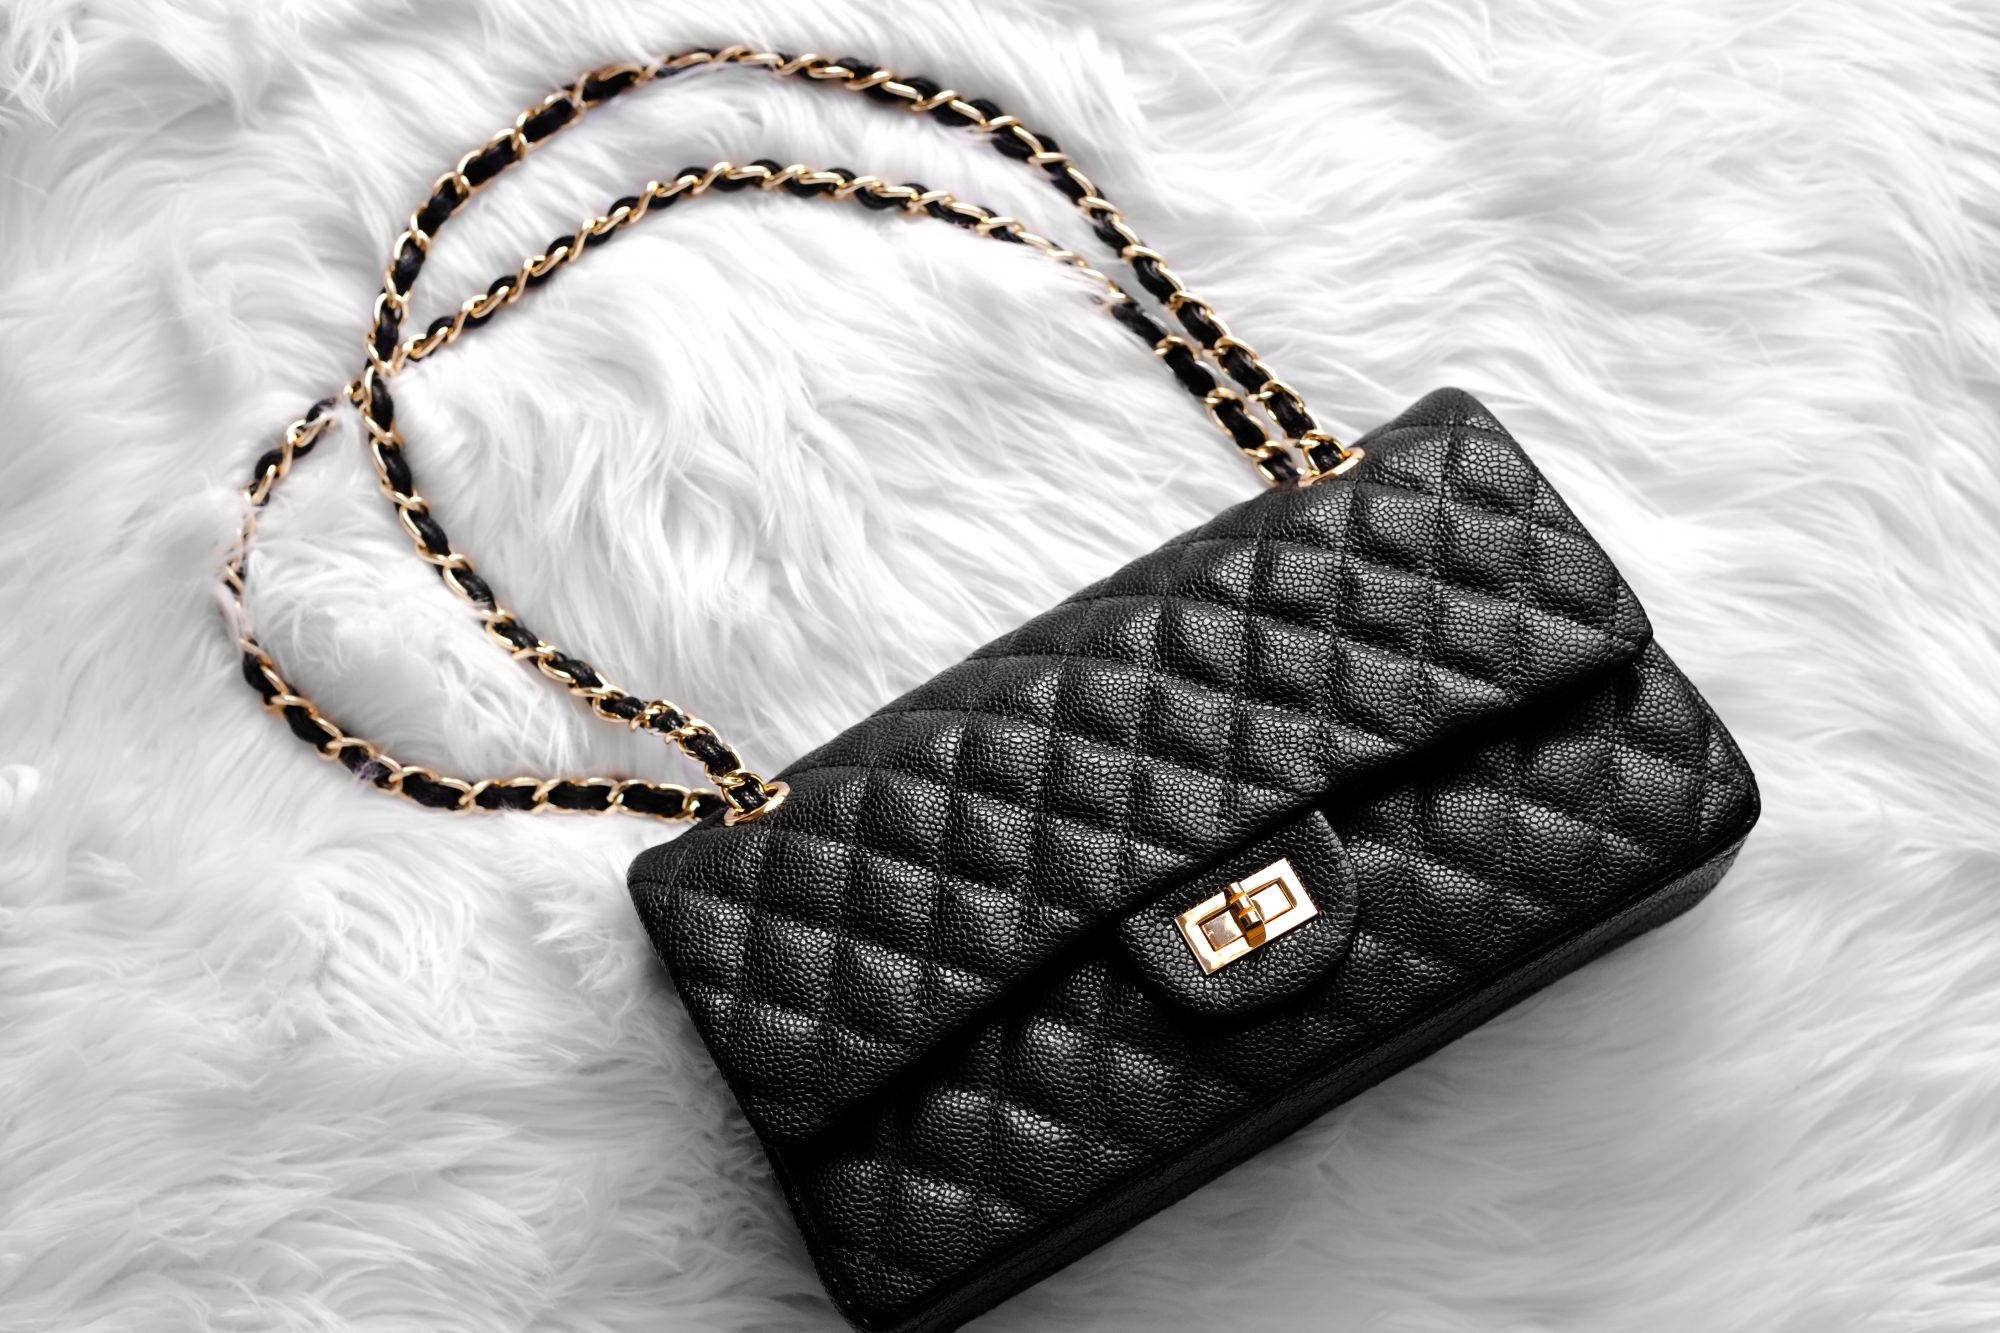 5b7f650355b5 Looking for a Chanel handbag without the hefty price tag  This genuine  leather one from ...